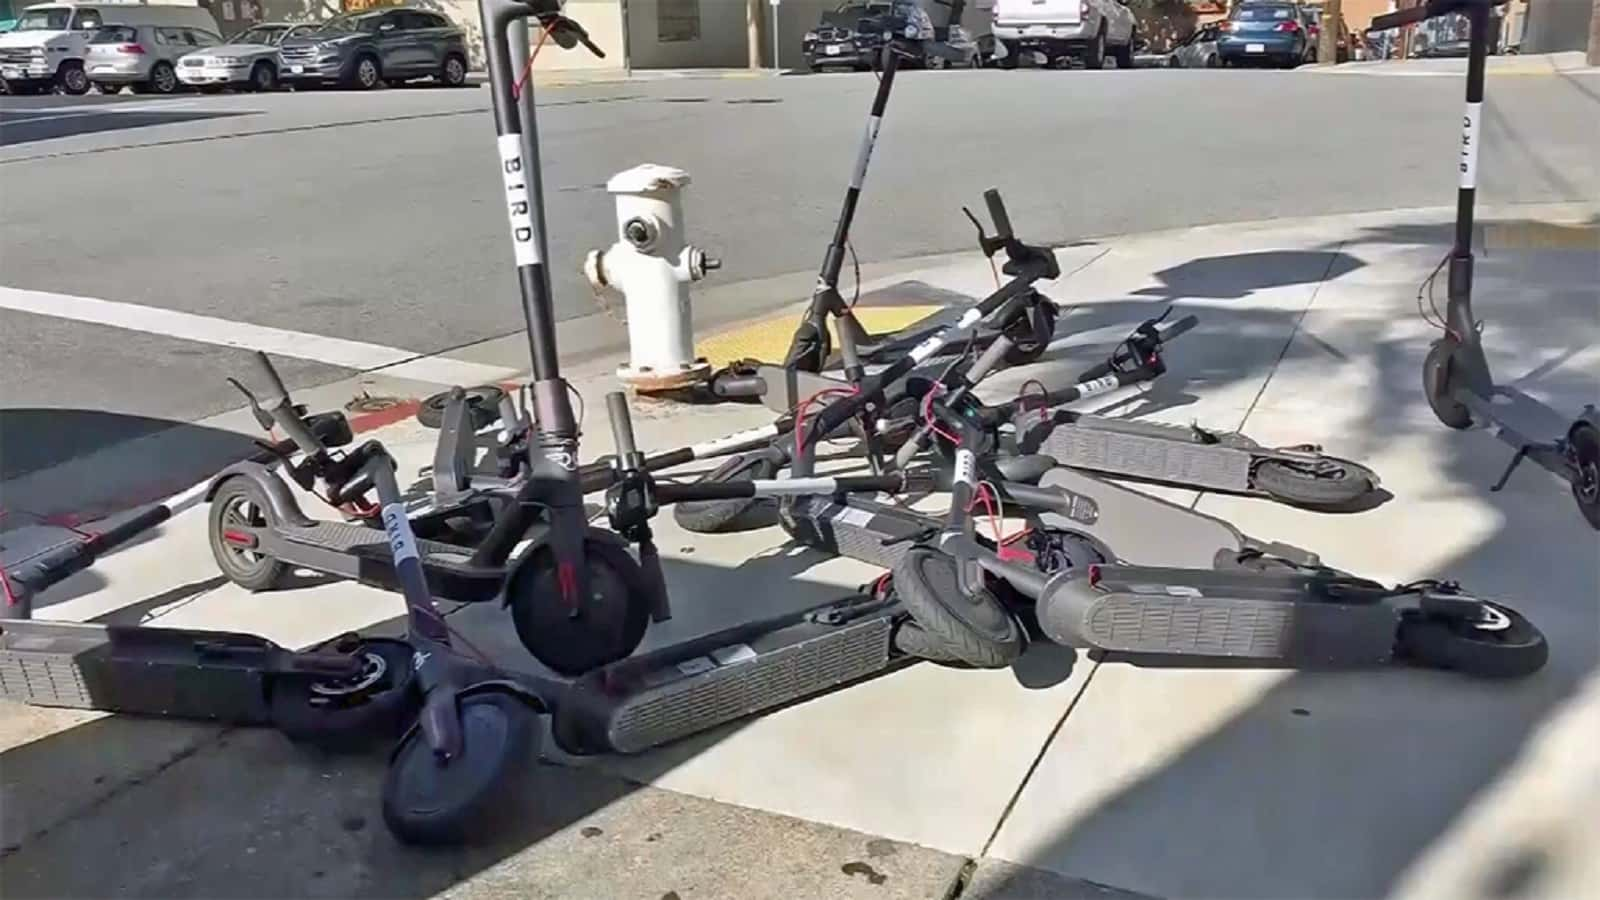 scooter and bird electric scooters thrown on ground